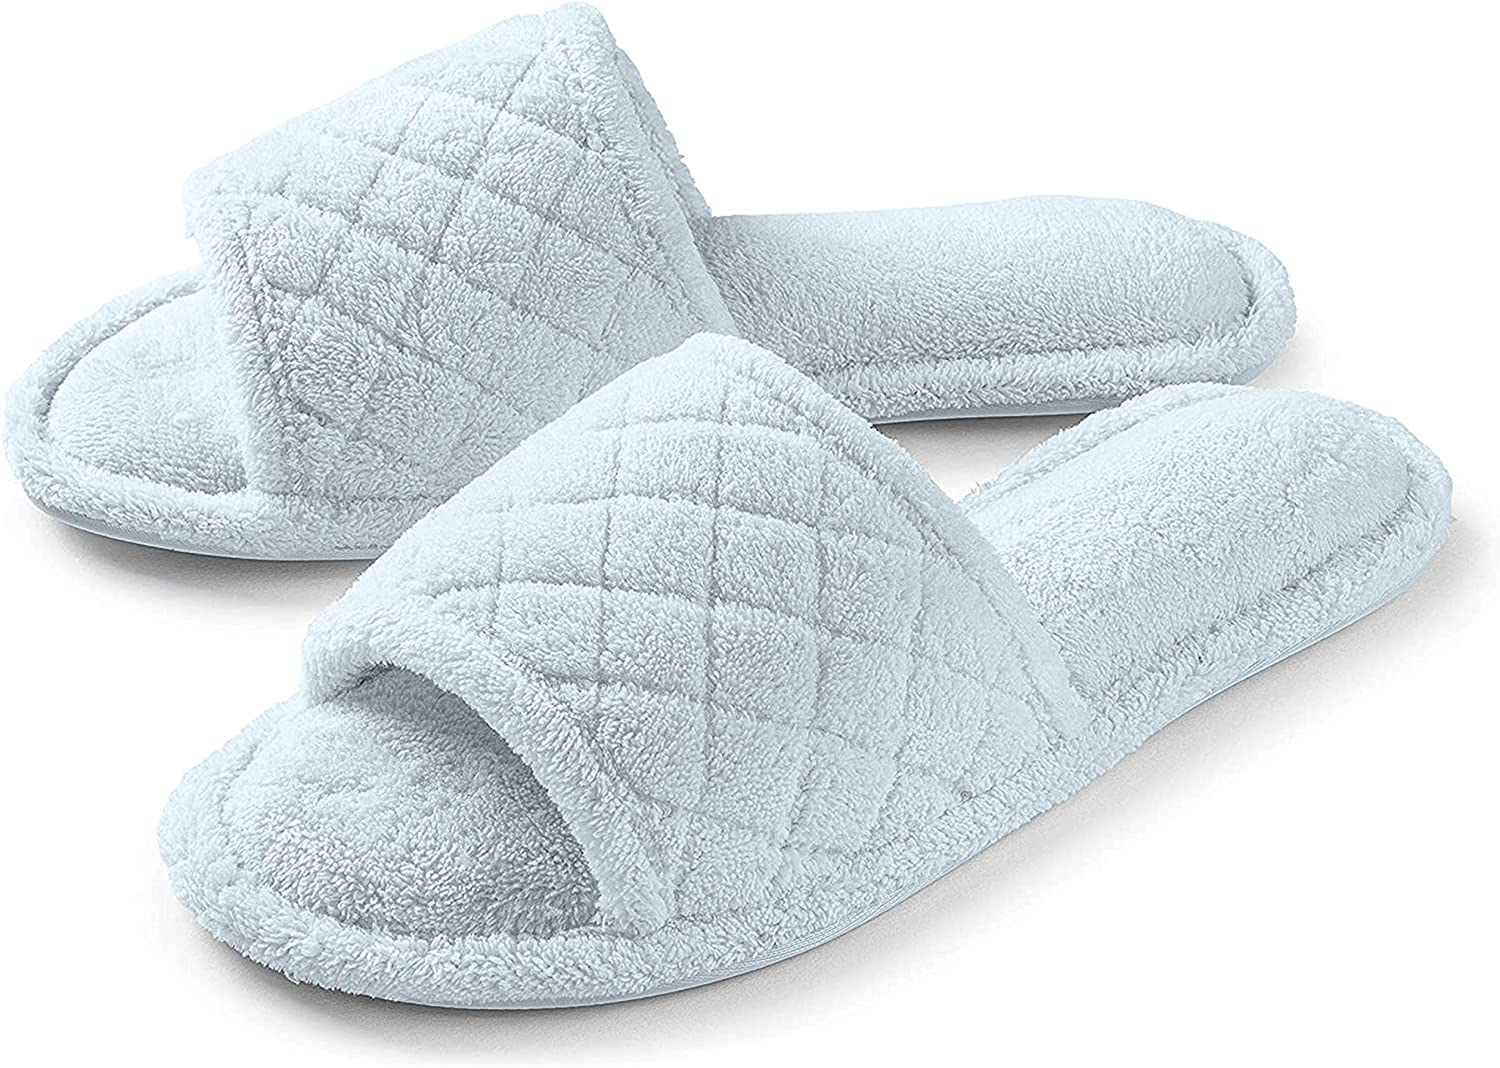 Roxoni Ultra Soft Limited Special Price Spa Slippers for Fuzzy Spasm price Terry Bathr Women Cozy